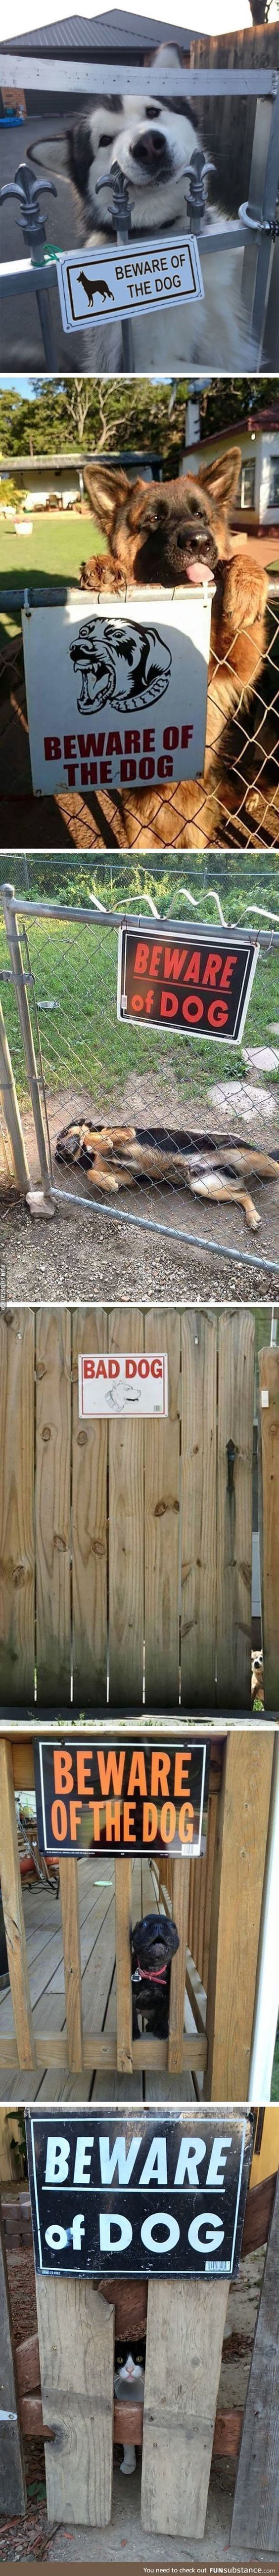 Beware of the dog,jajaja too cute to be true #dogsfunnyshaming - #Beware #Cute #dogjajaja #dogsfunnyshaming #machine #true #cuteanimalphotos